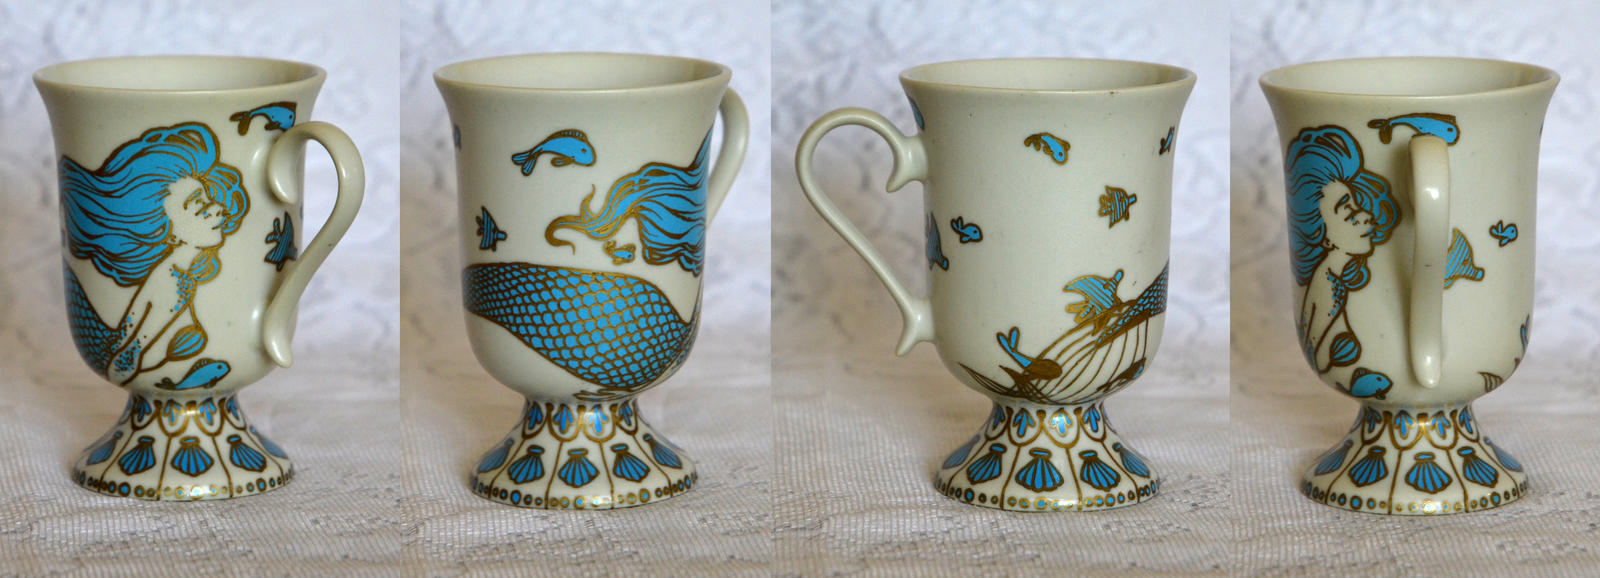 Fancy Teal and Gold Mermaid Mug by AucoinArt